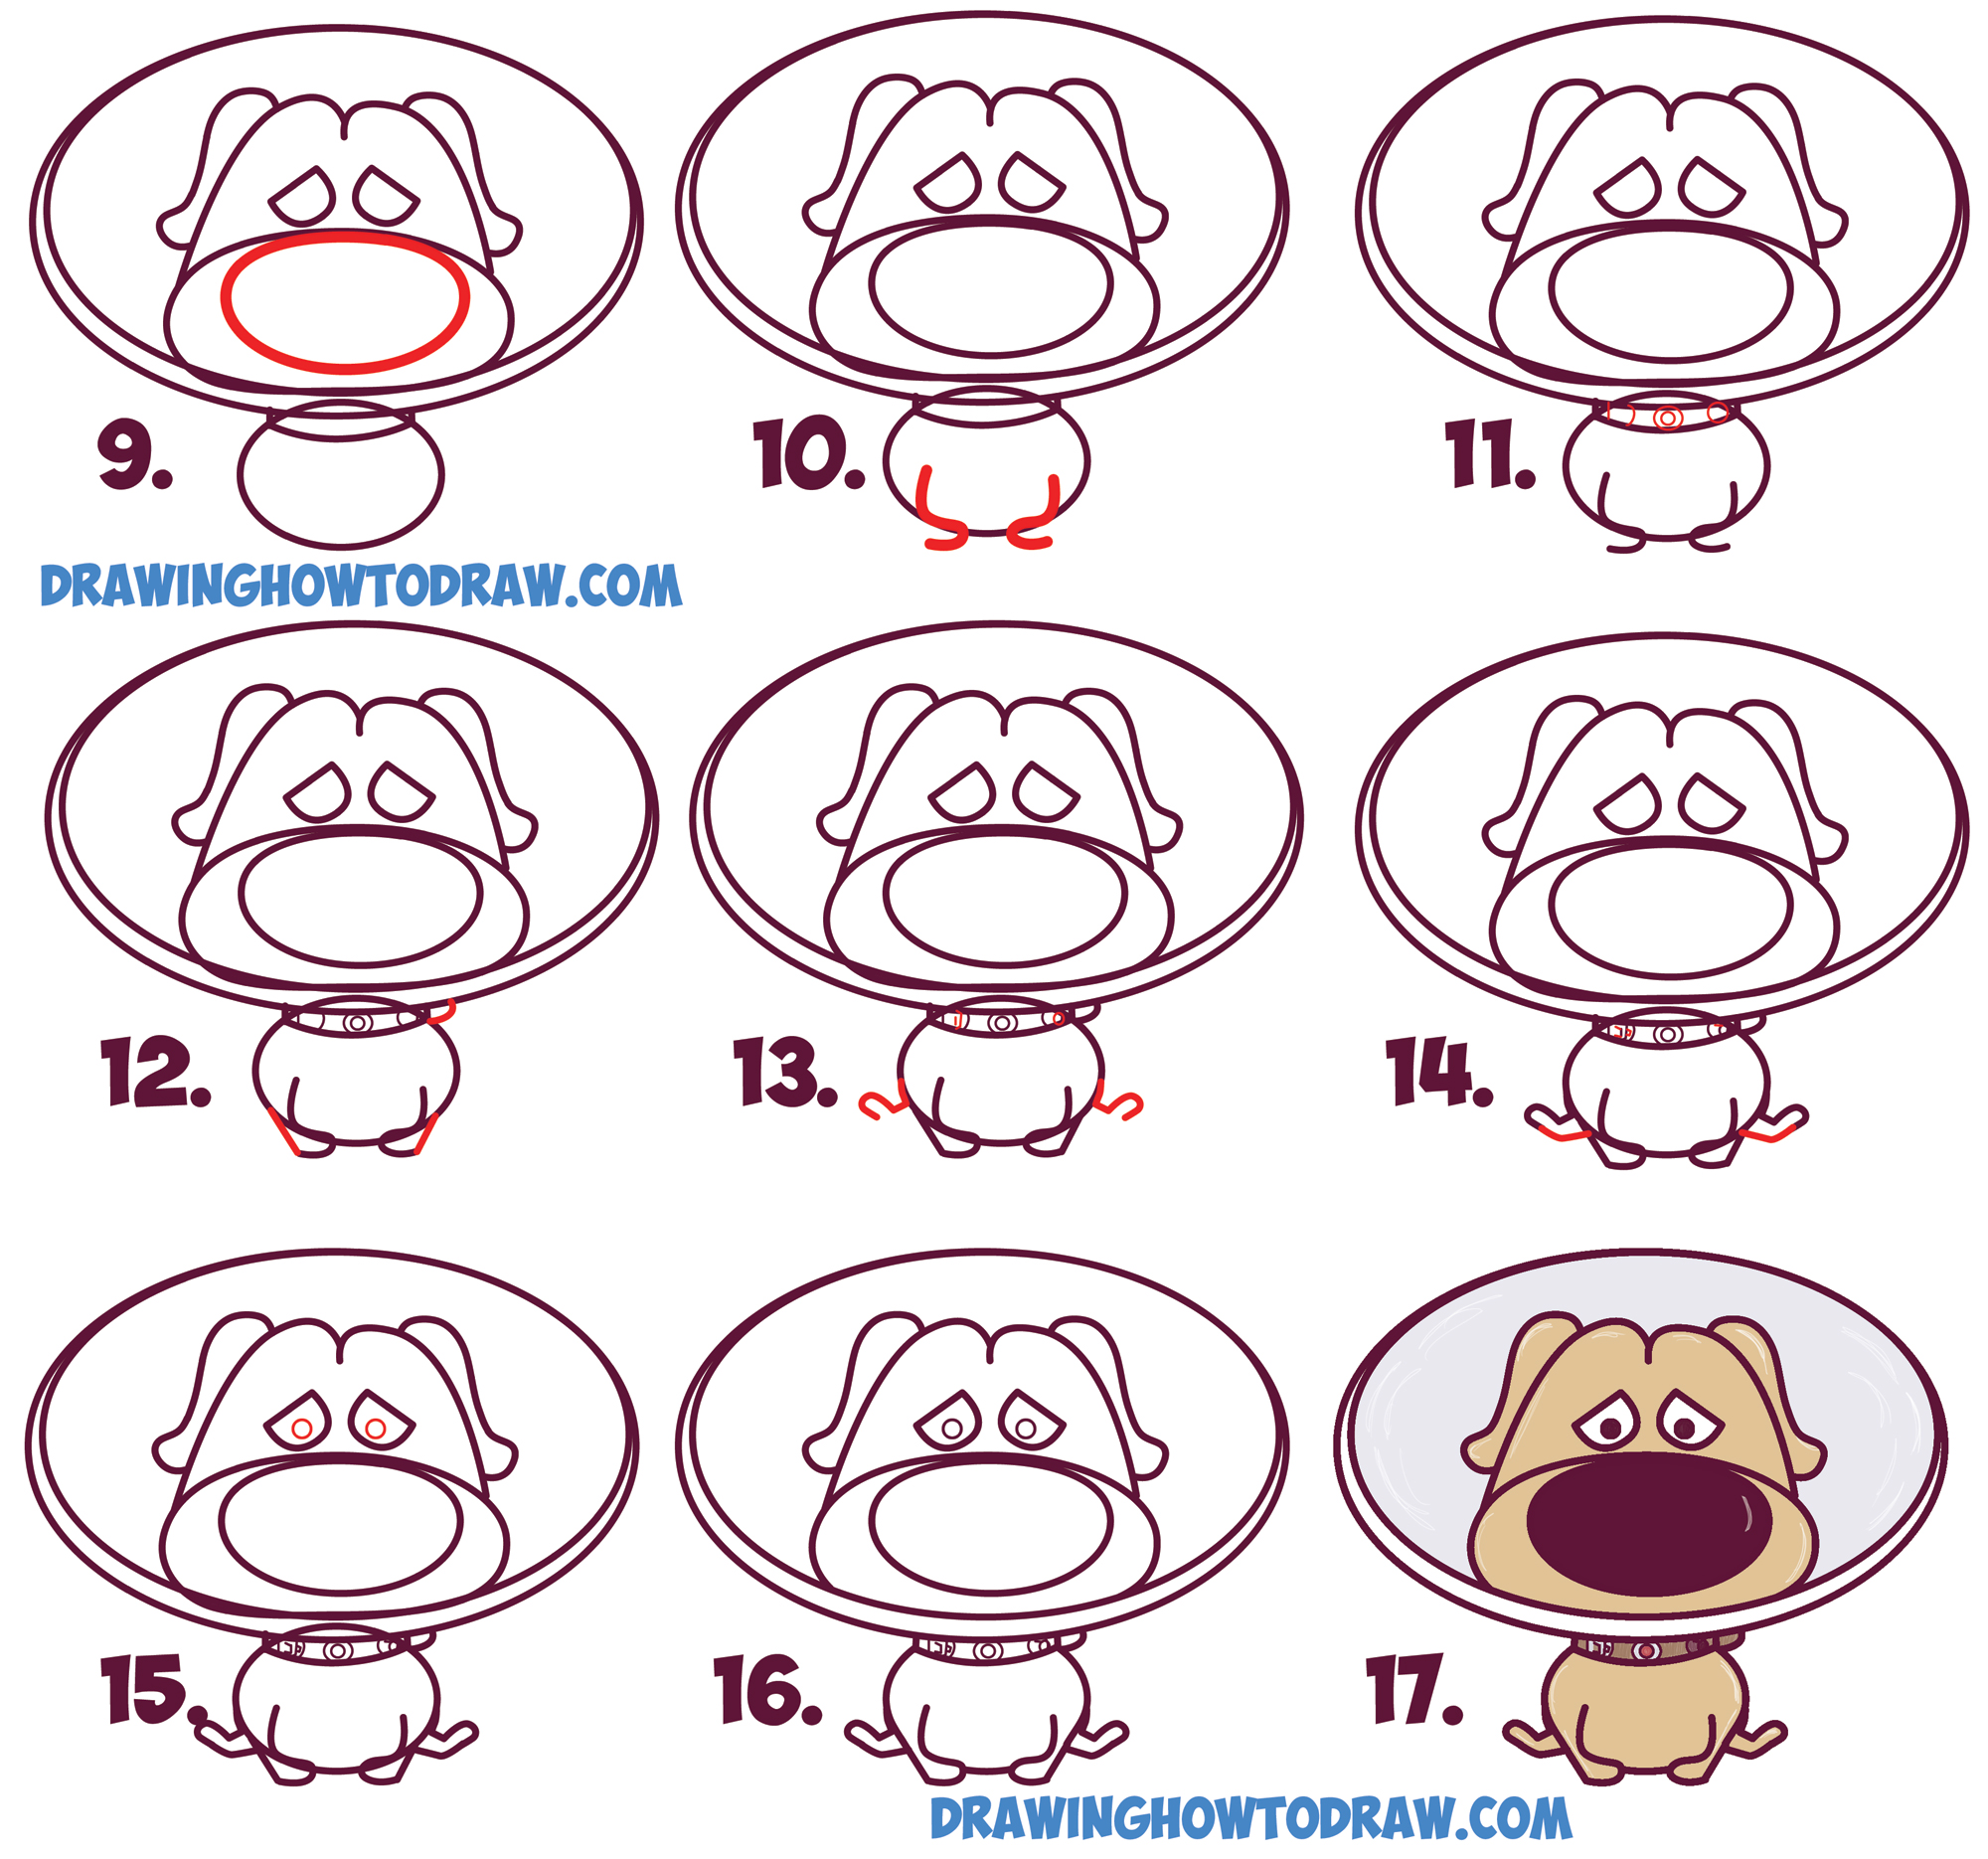 Learn How to Draw Dug (Cute / Kawaii / Chibi) from Up in Simple Steps Drawing Lesson for Kids